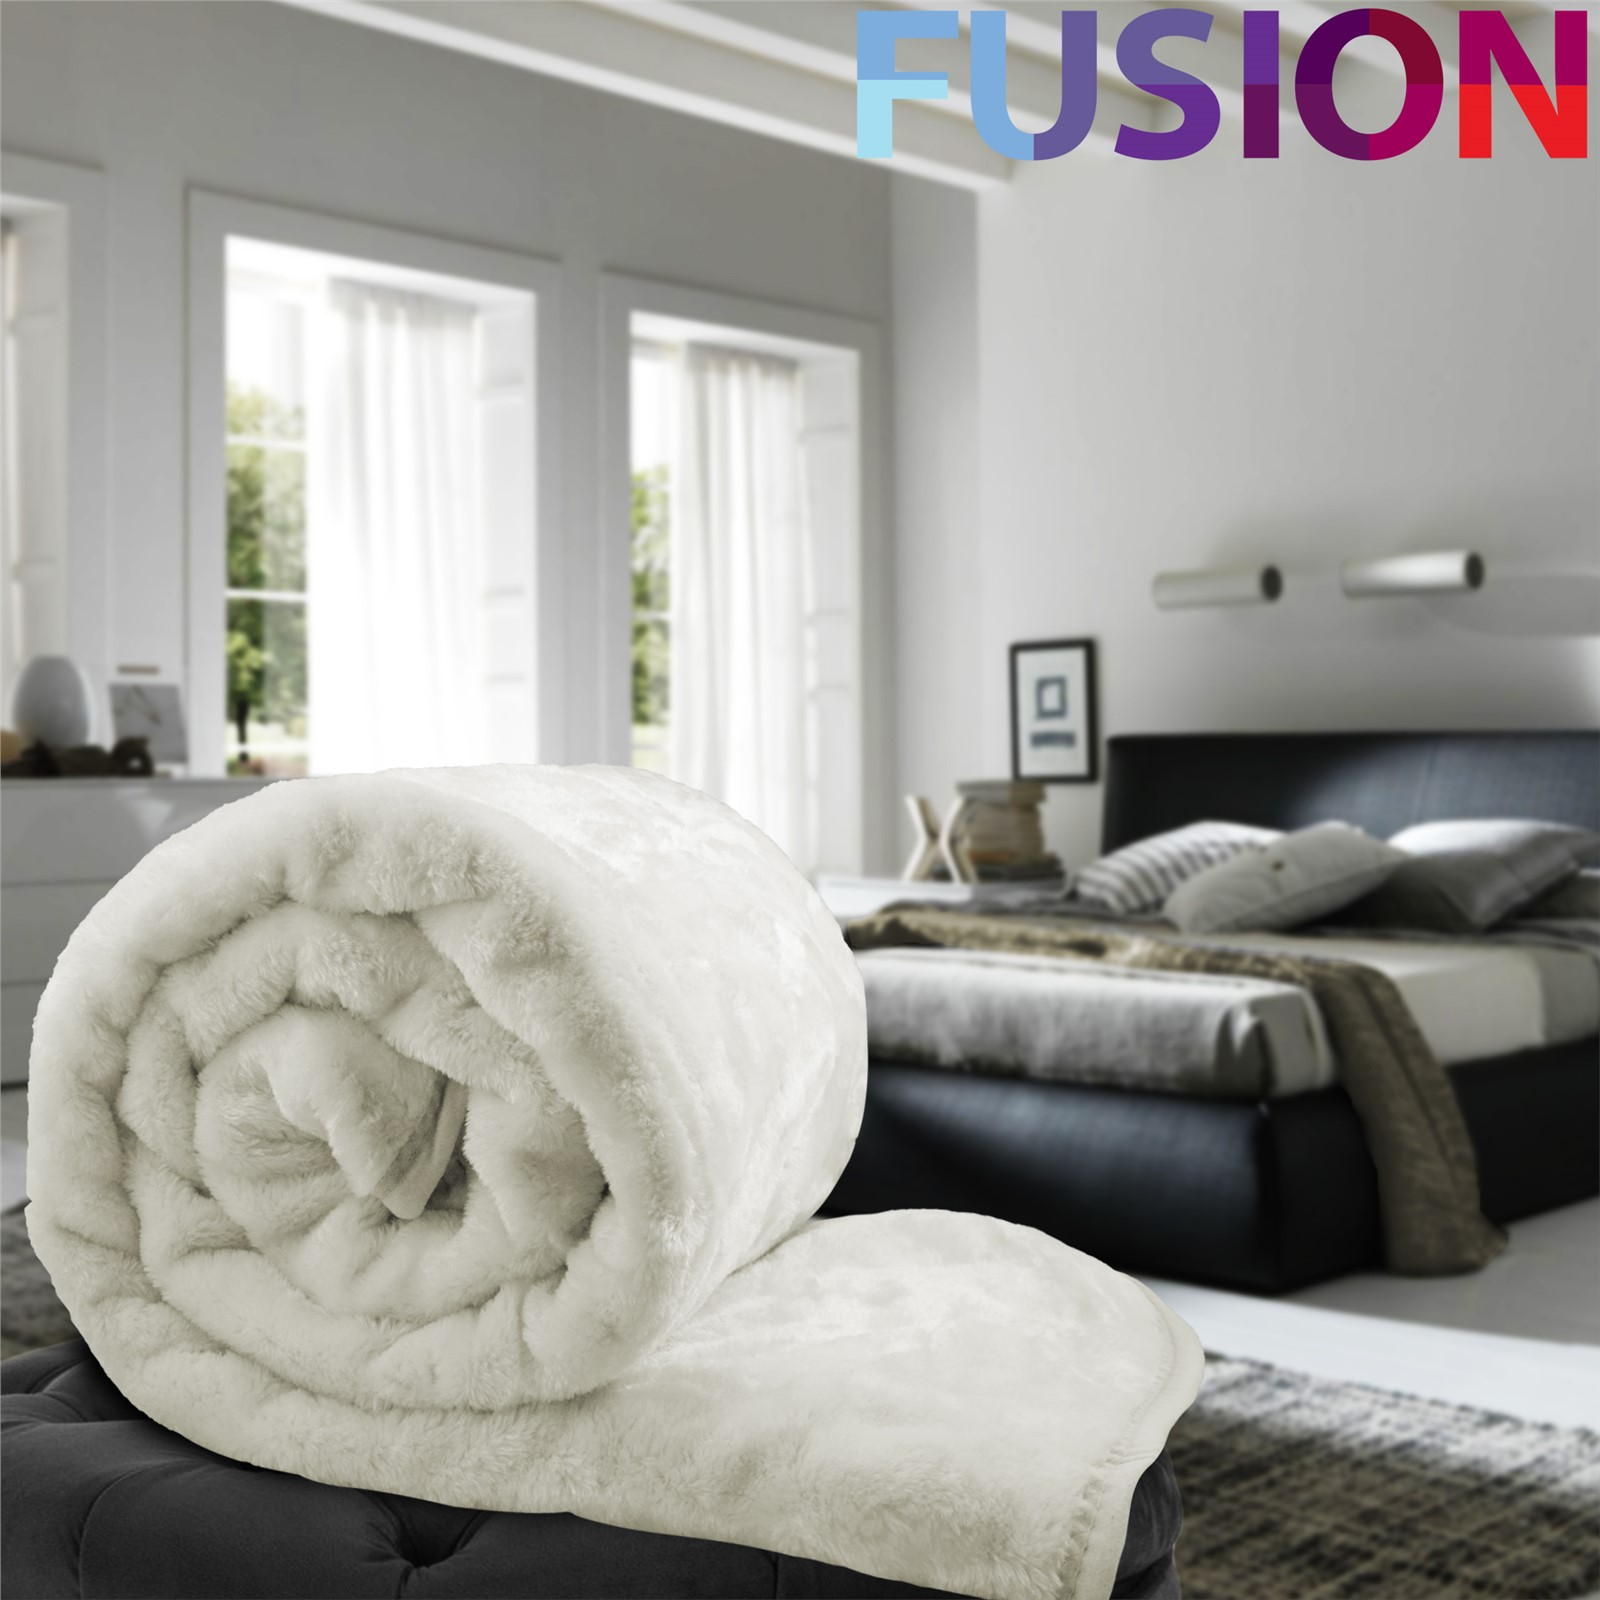 cream sofa throws uk small sectional no chaise luxury faux fur mink throw soft warm fleece blanket double